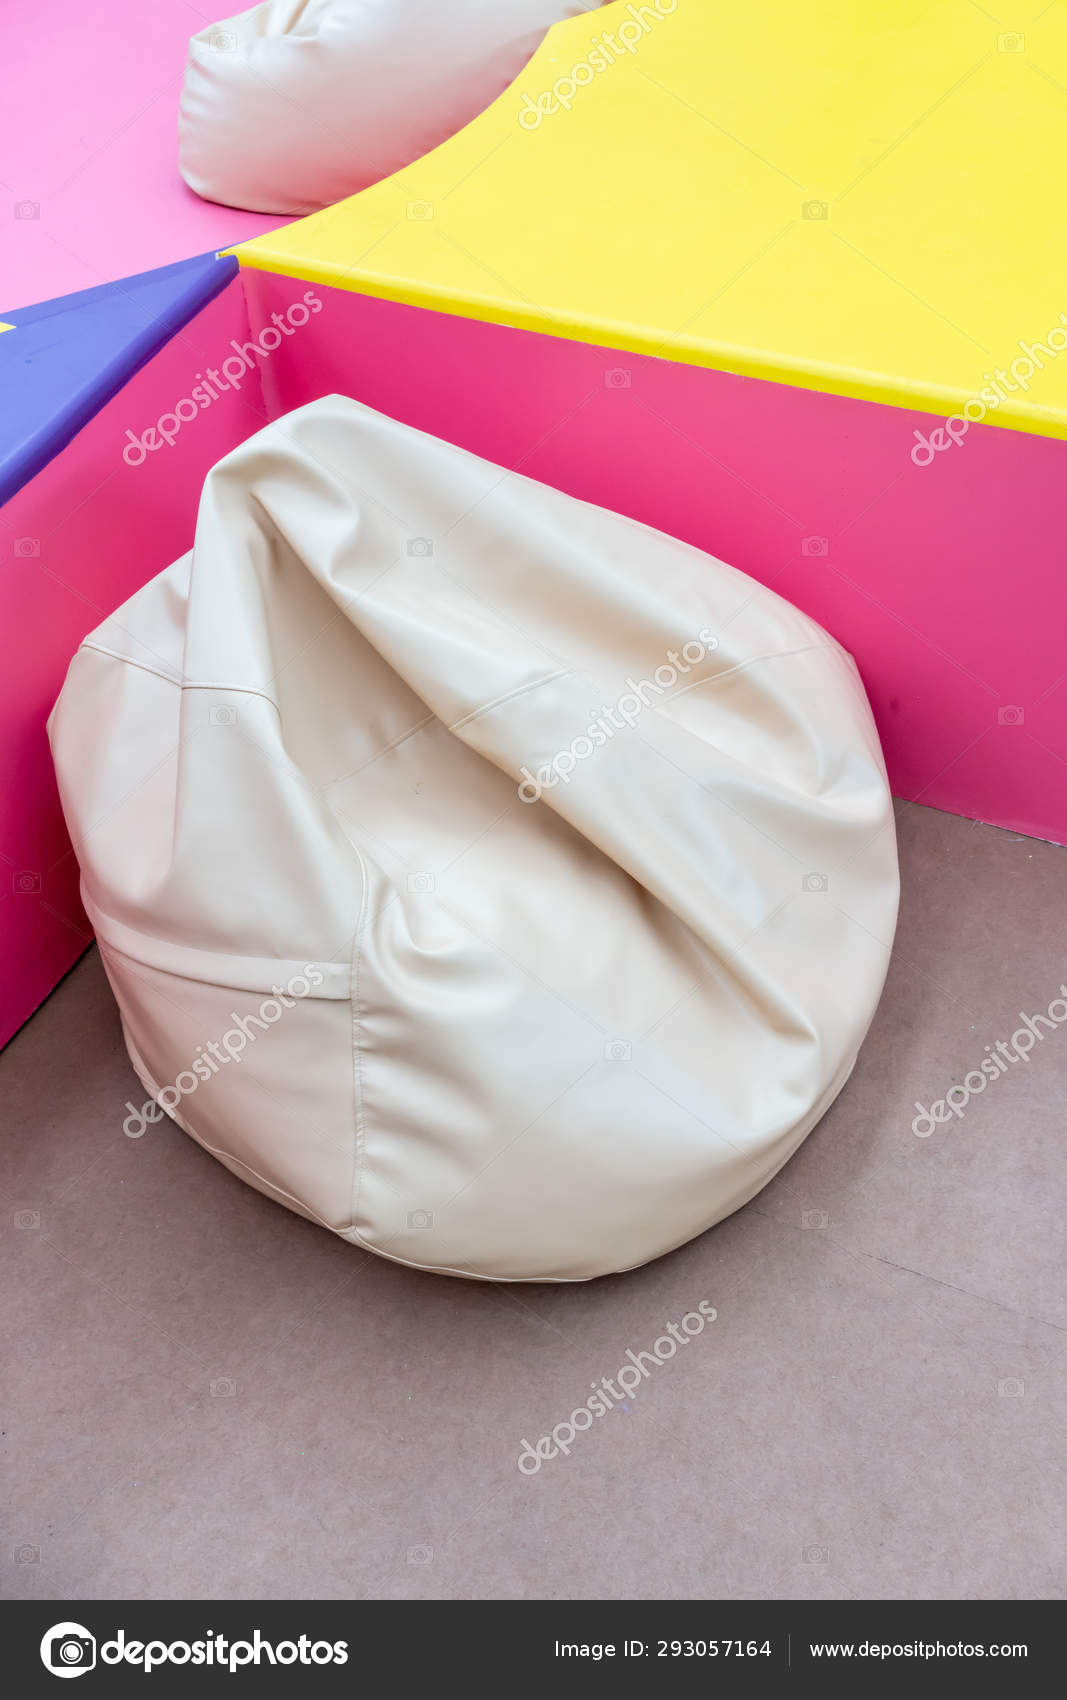 White Bean Bag In Colorful Playground Corner For Relax